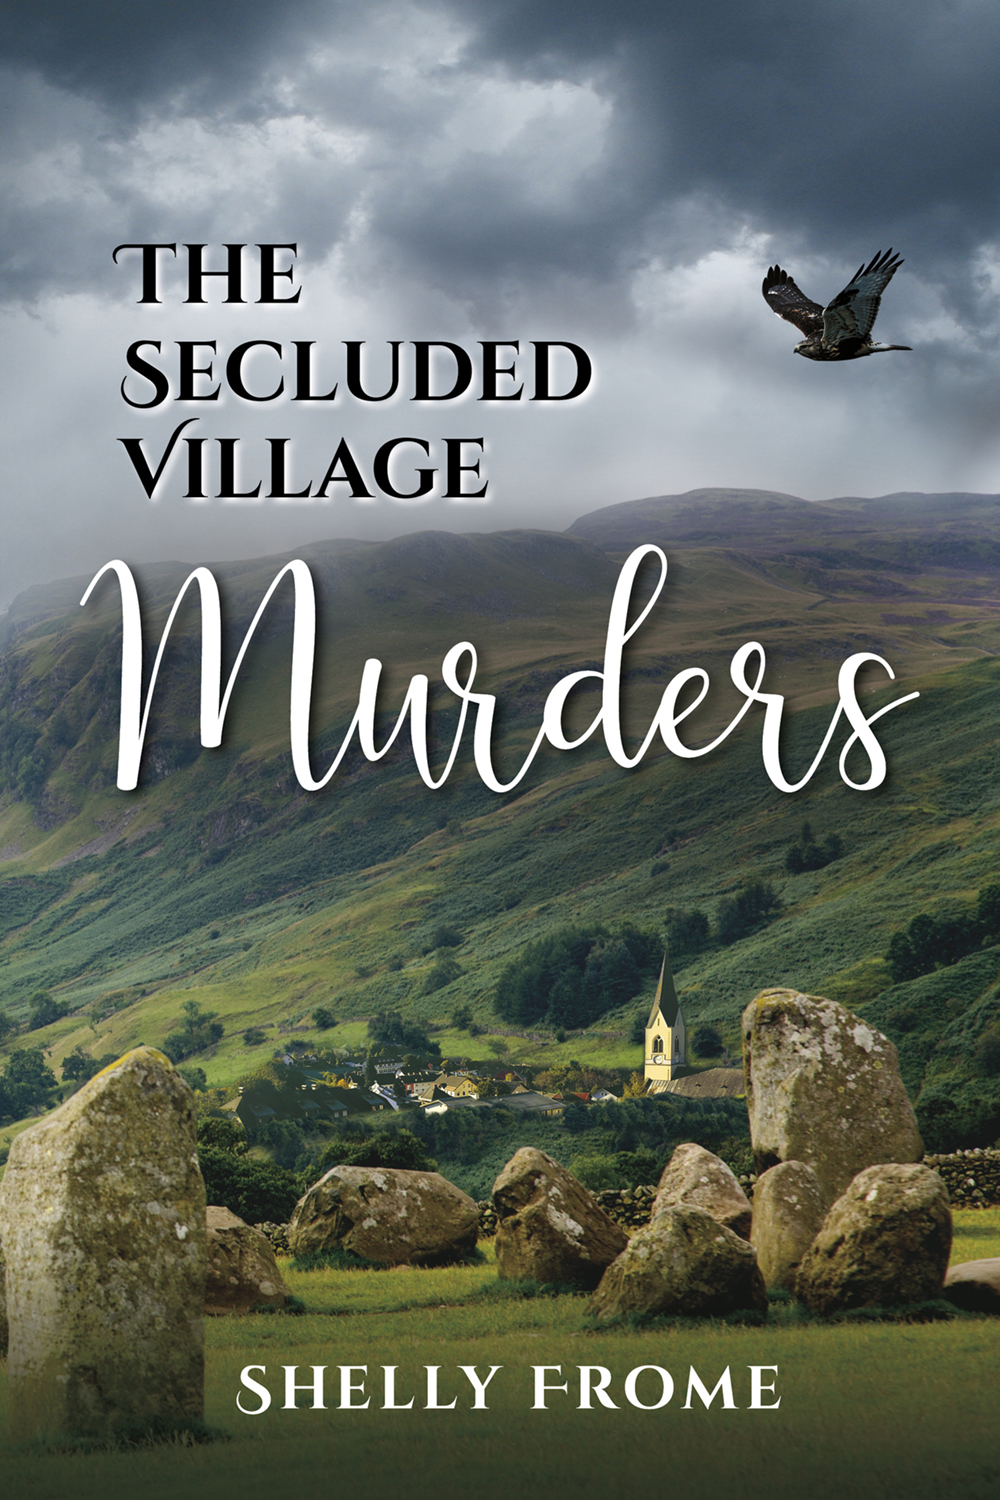 The Secluded Village Murders by Shelly Frome